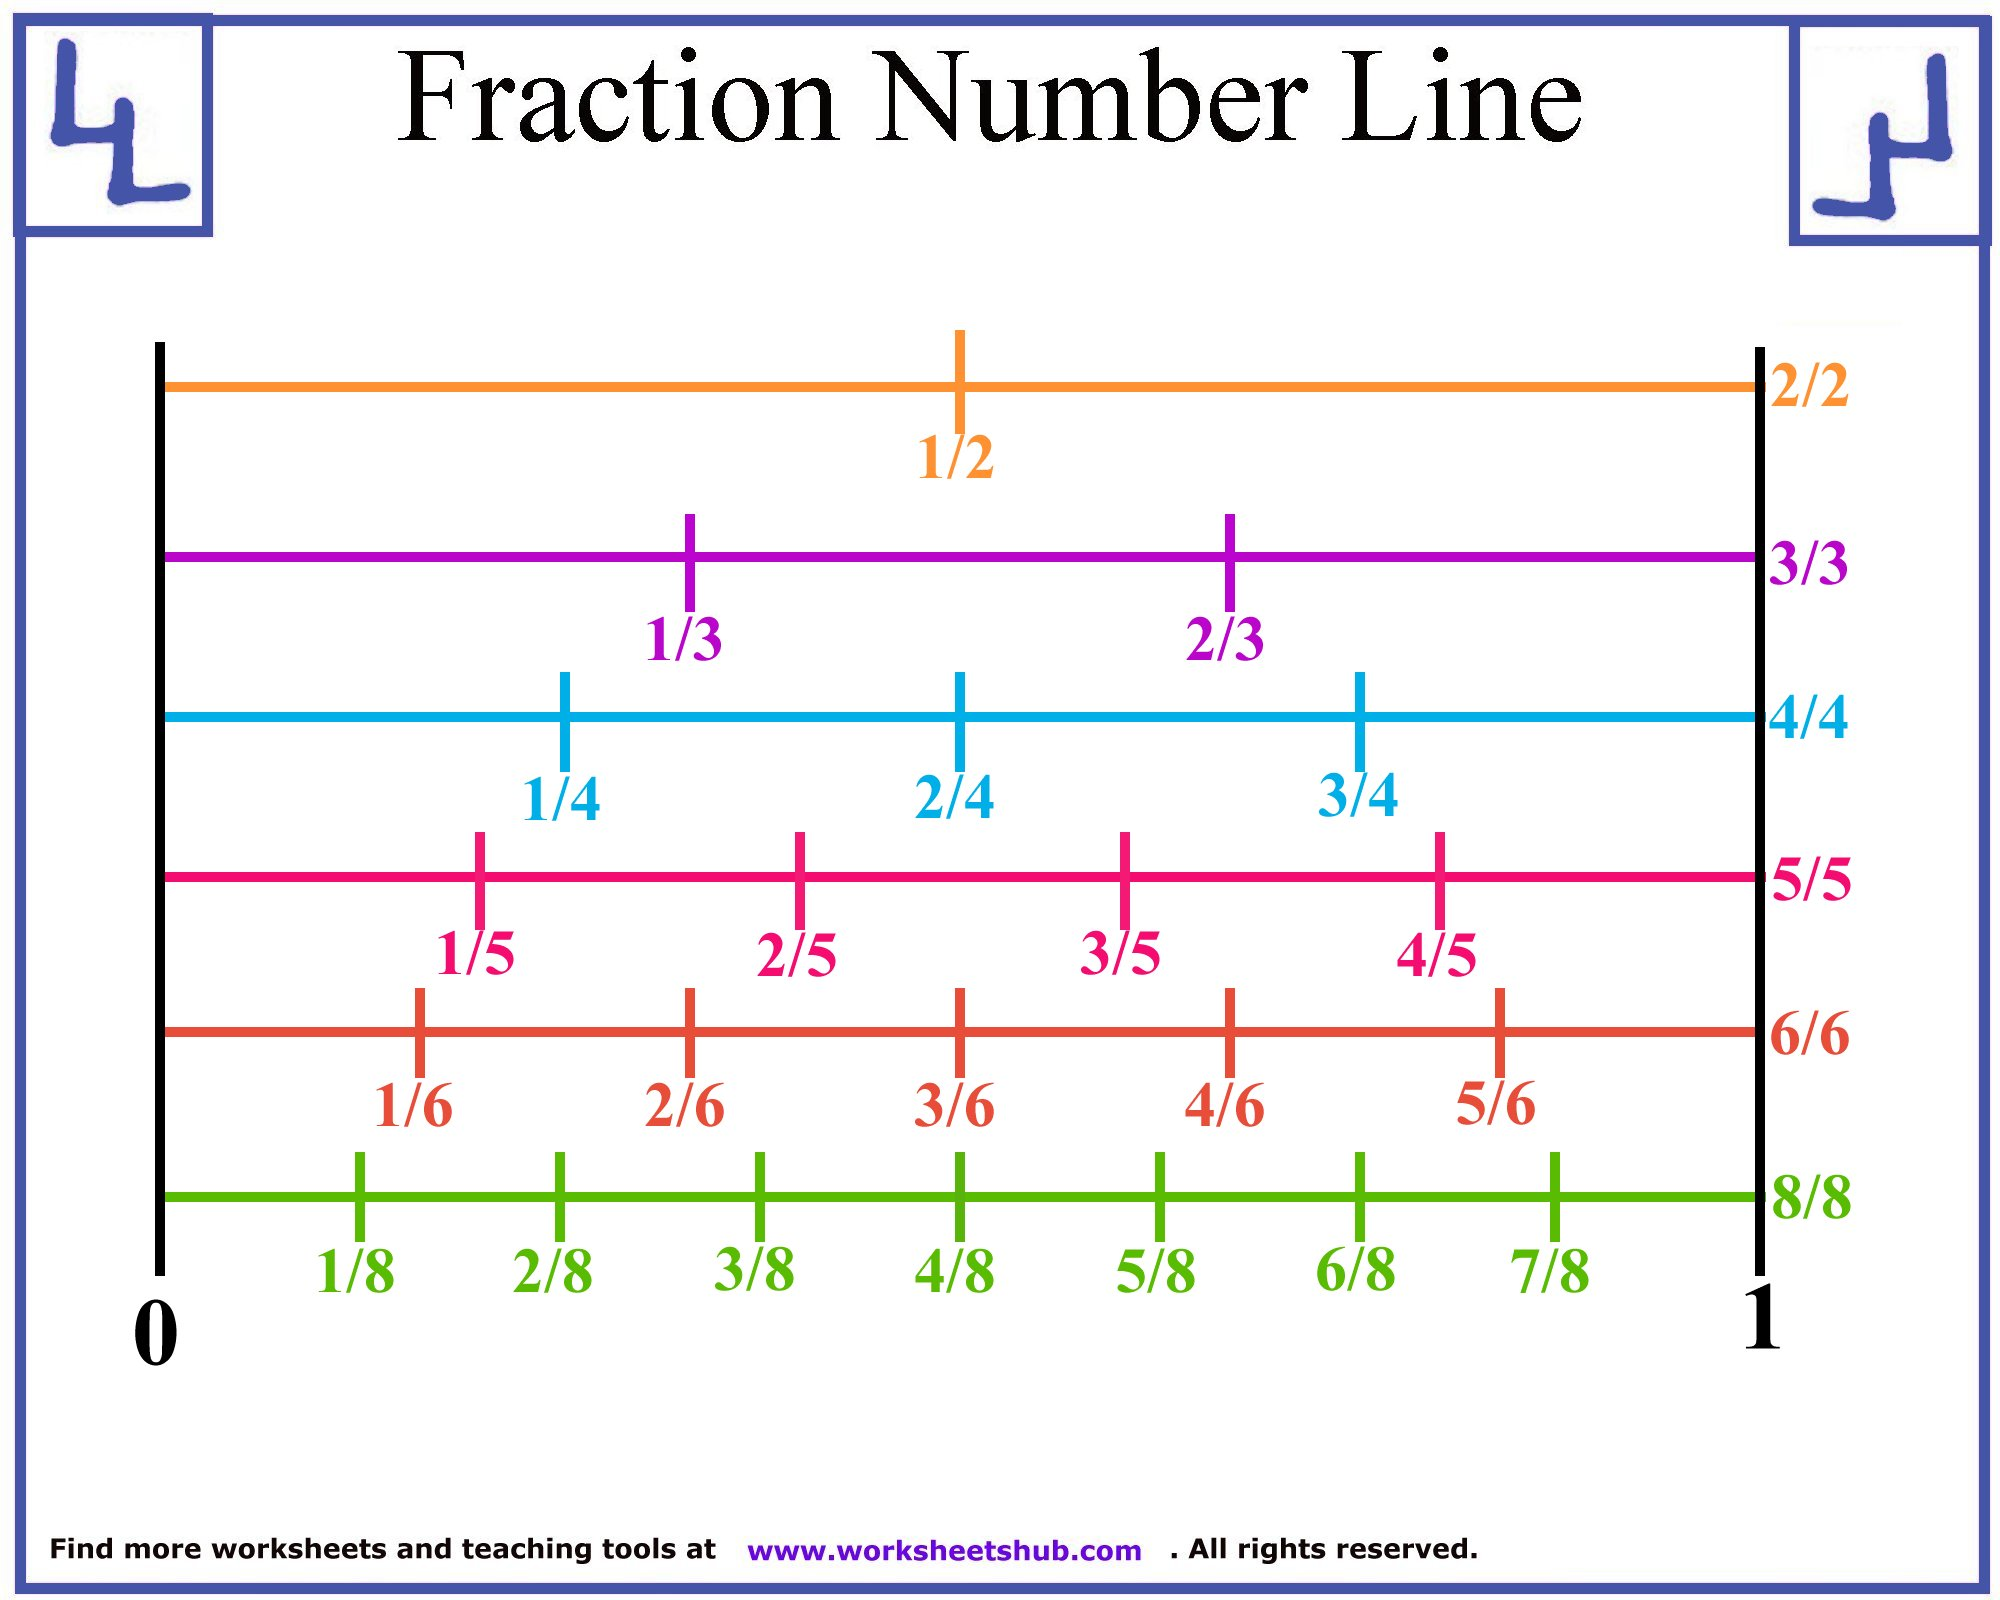 Fraction Number Line Printable